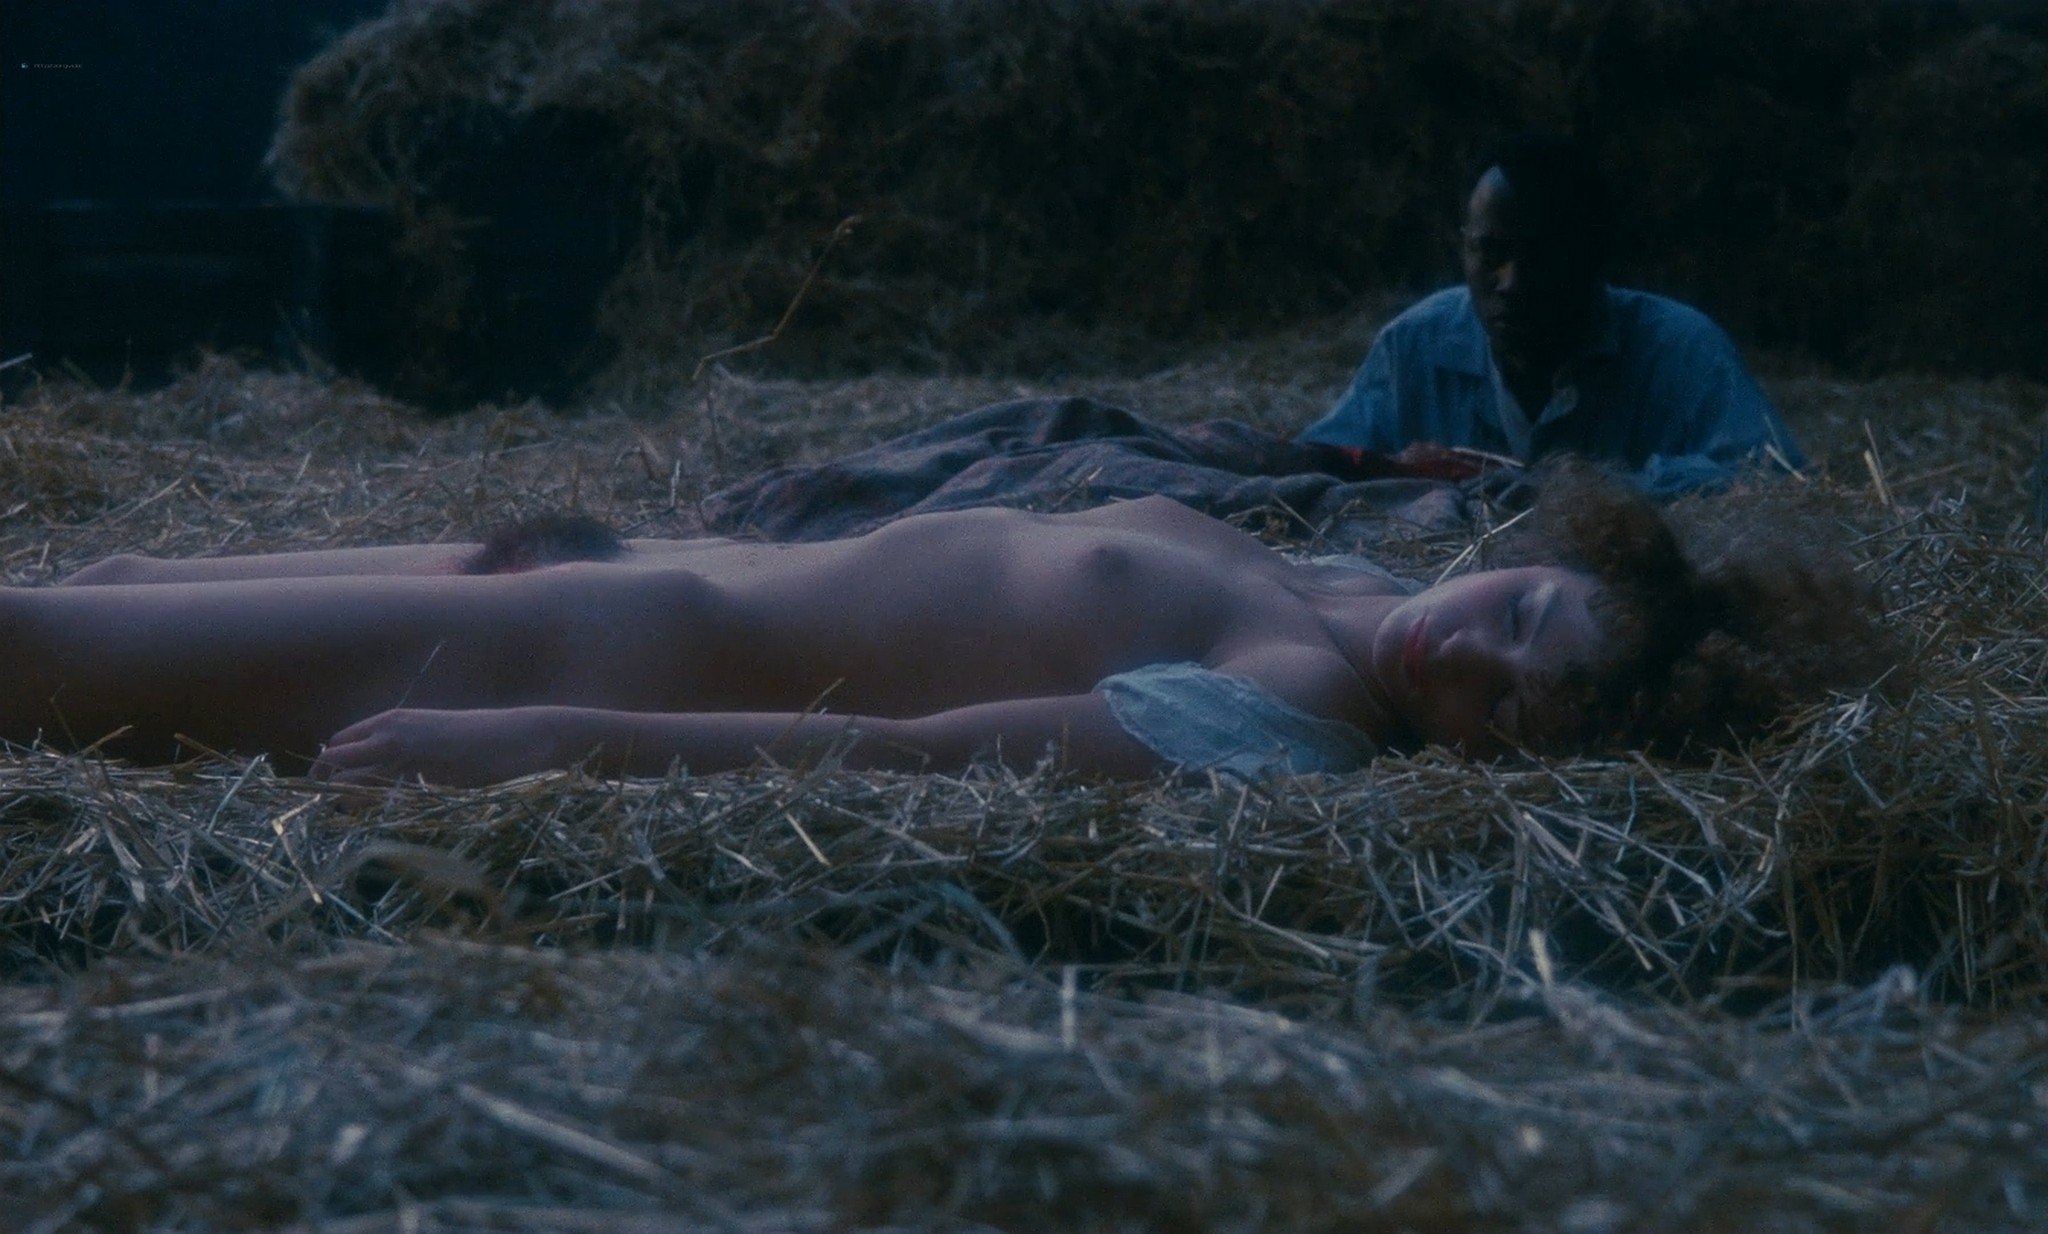 Marina Pierro nude sex Gaelle Legrand and Pascale Christophe nude bush and sex Les heroines du mal 1979 1080p BluRay REMUX 20